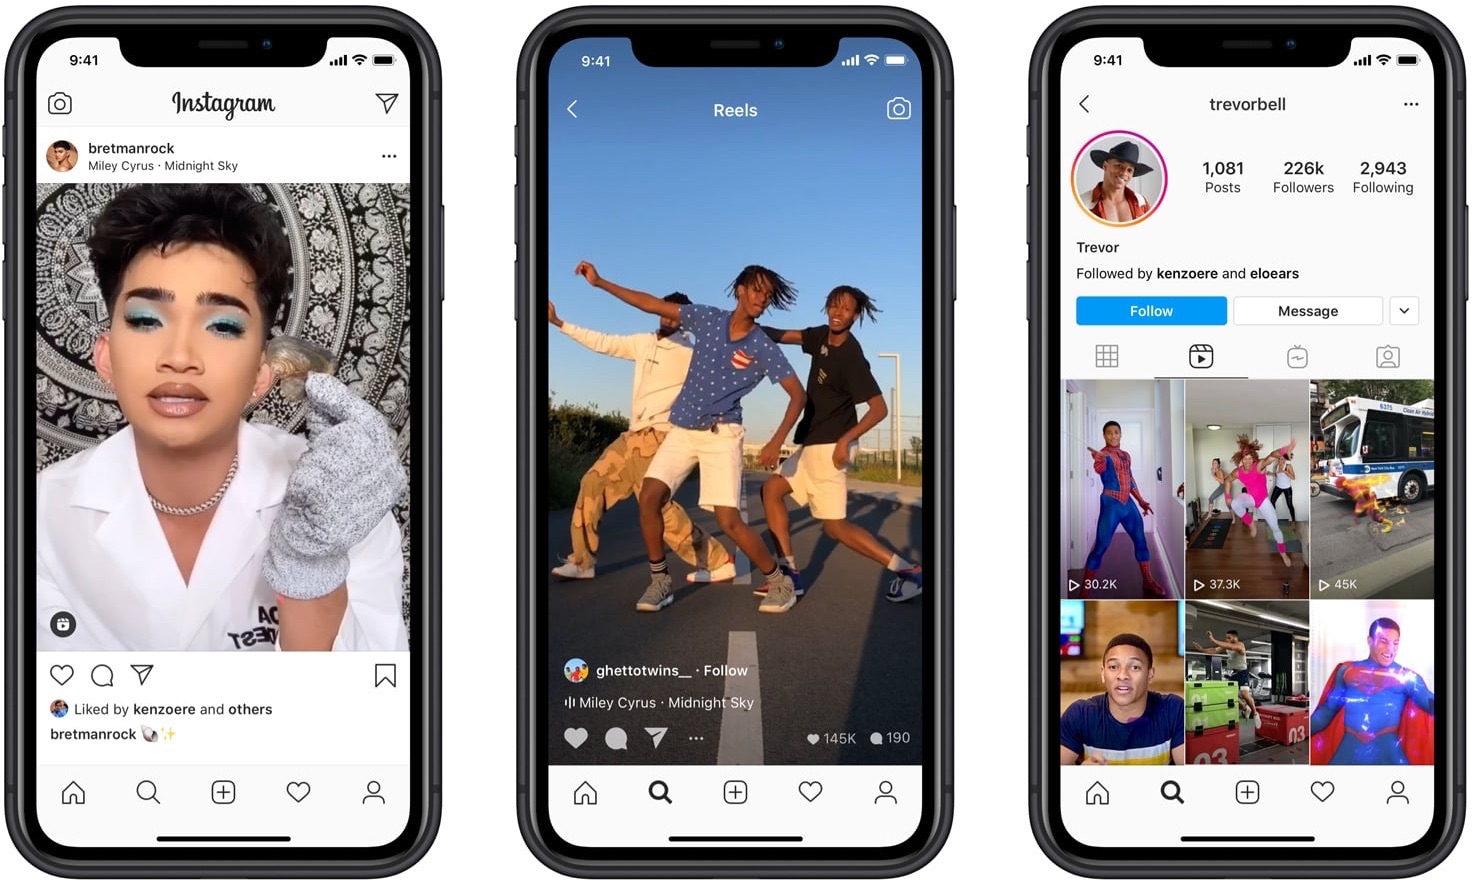 An image showing fullscreen Instagram experience with Reels